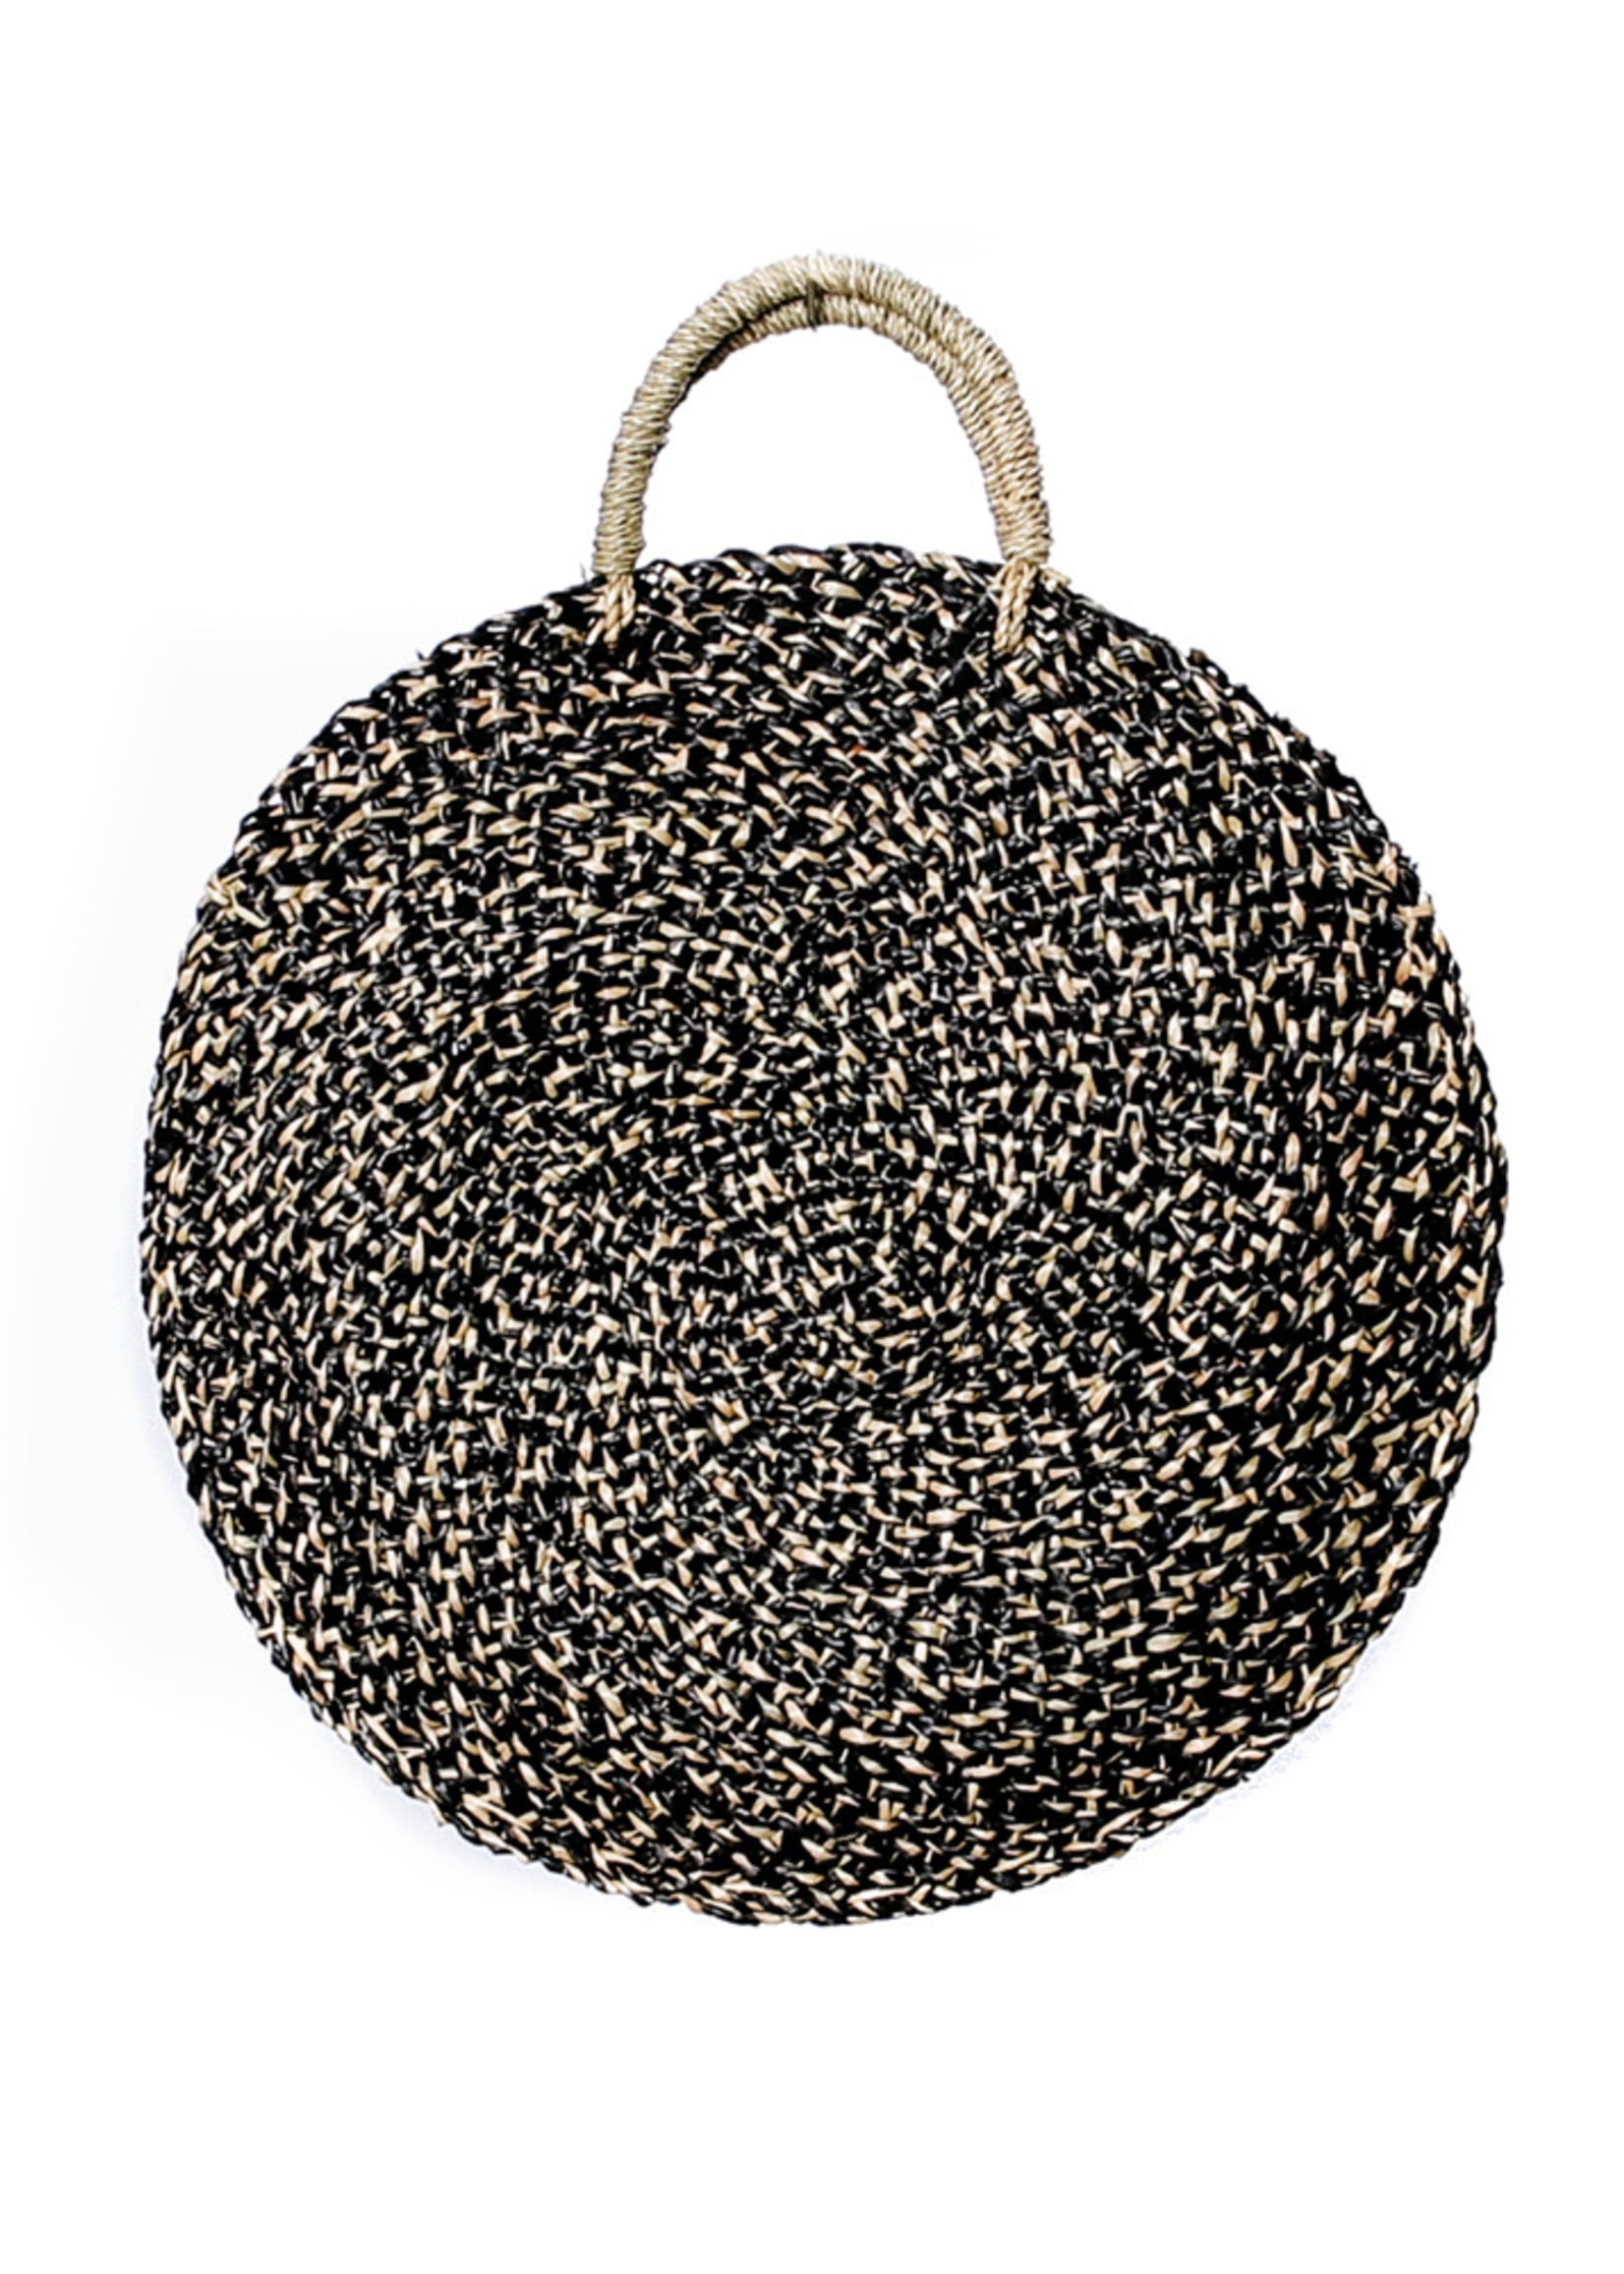 The Seagrass Spotted Roundi Bag  - Natural Black - M